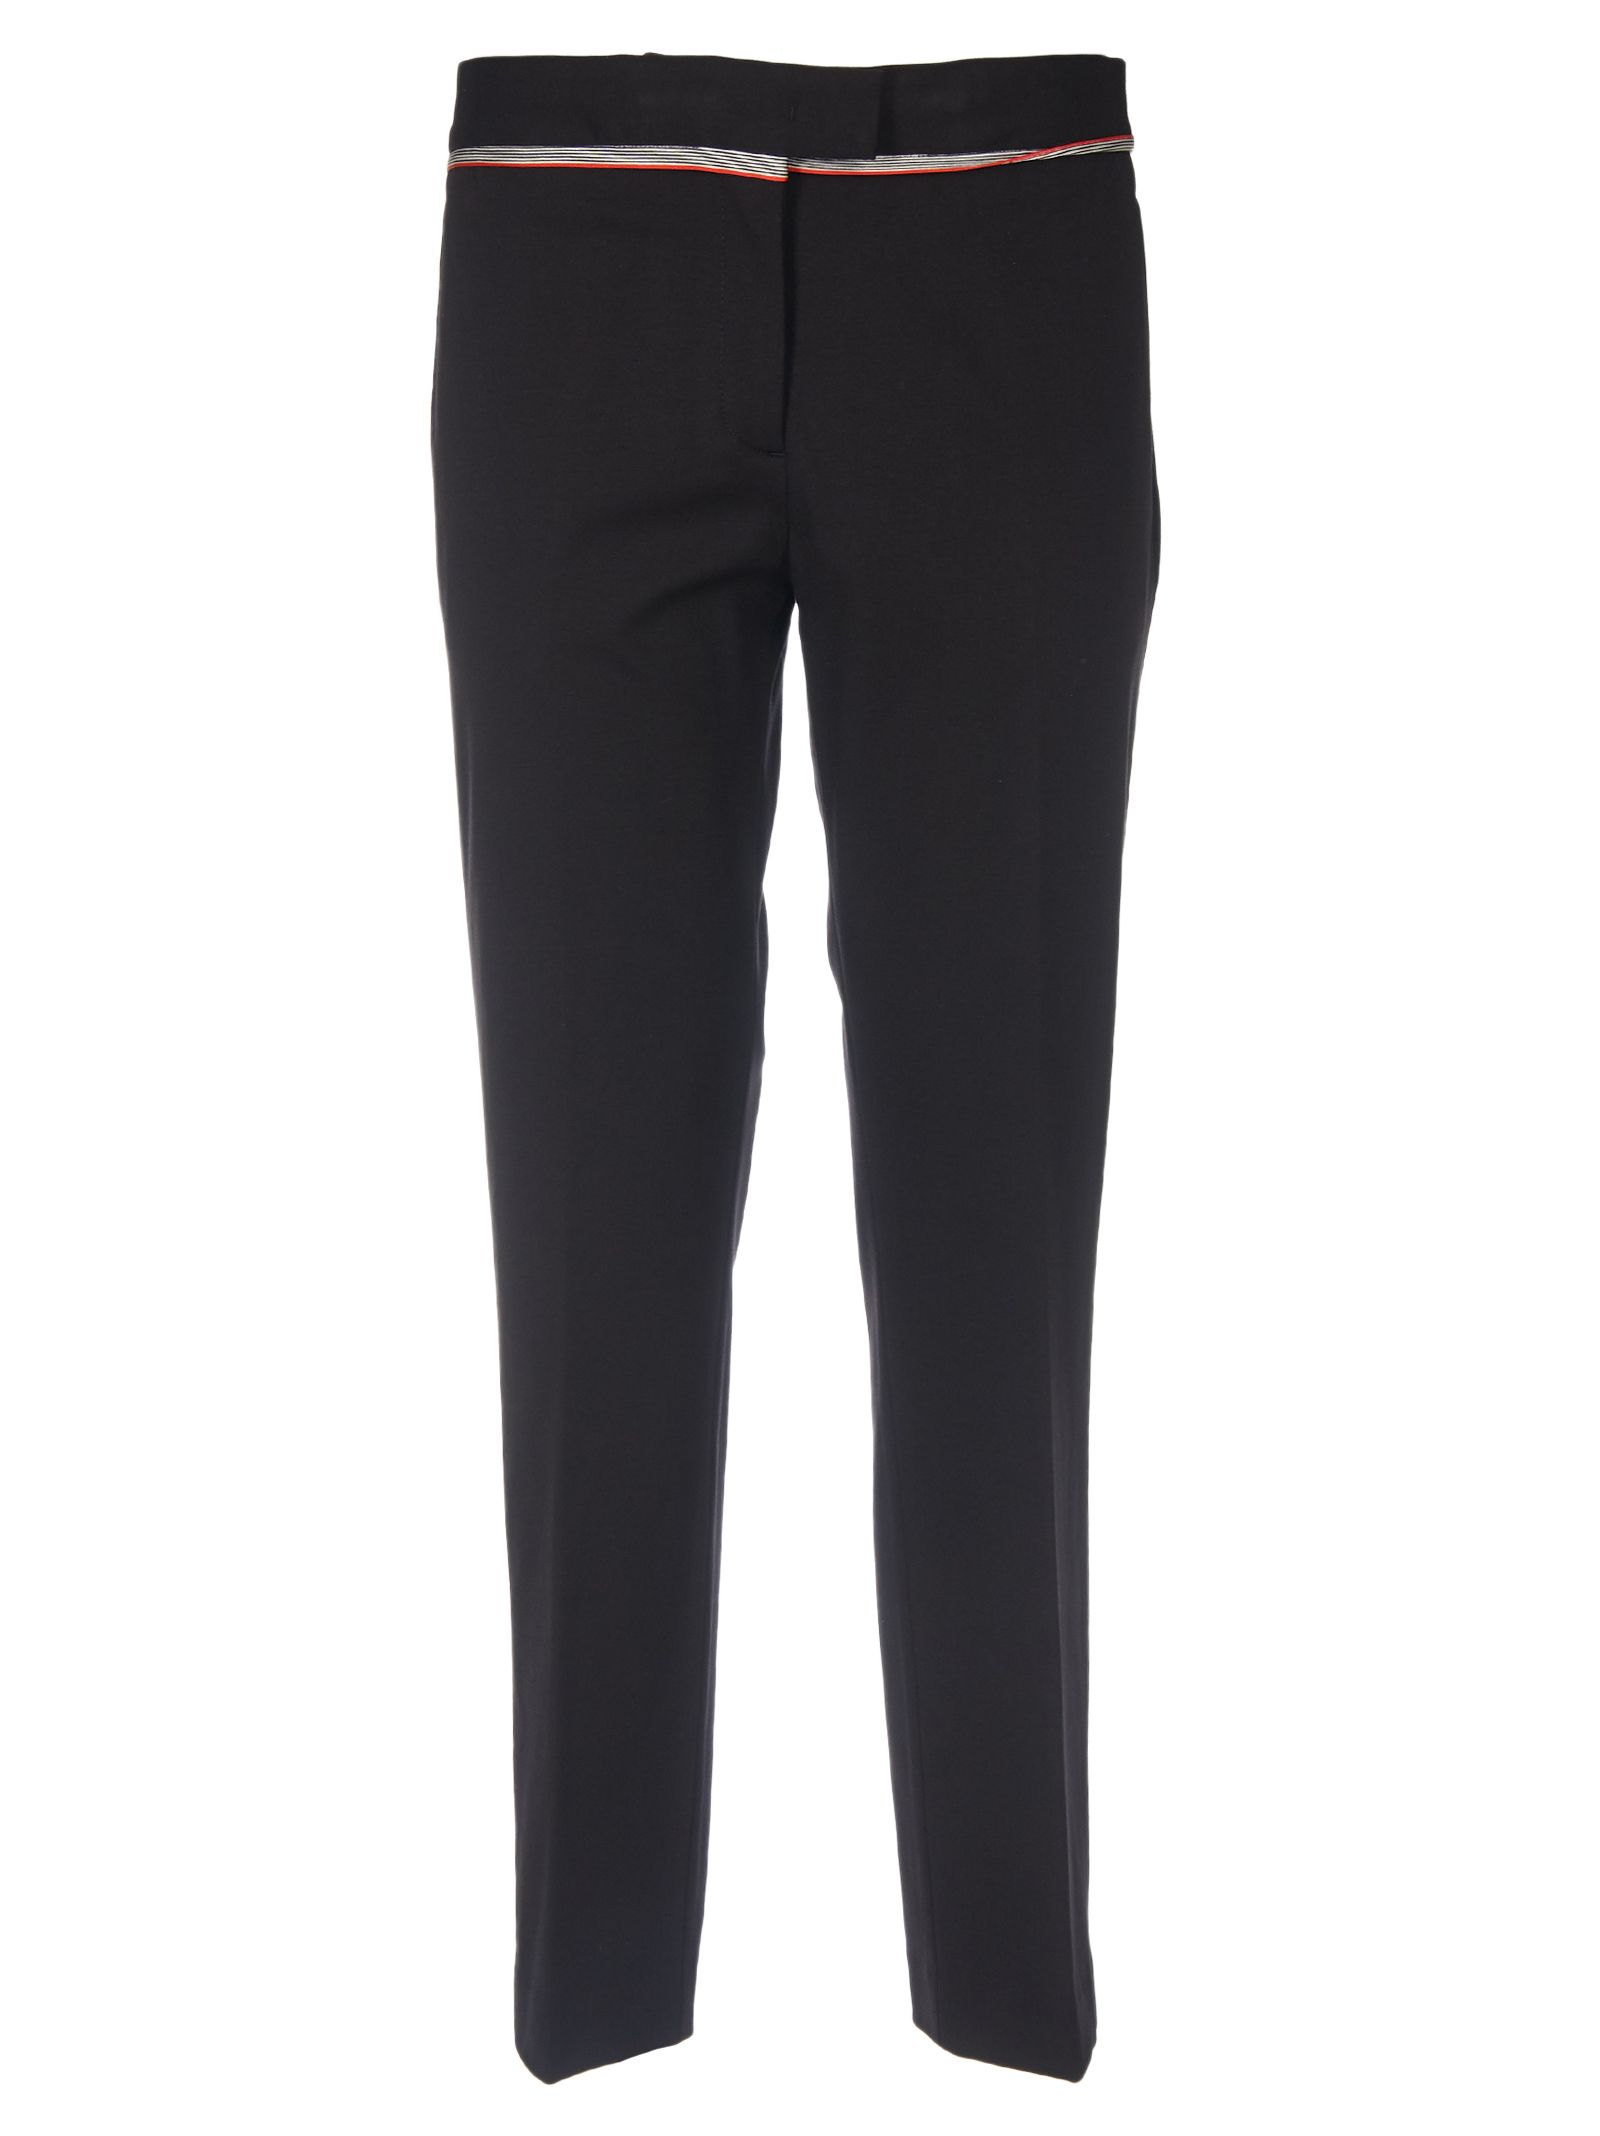 Paul Smith Skinny Trousers